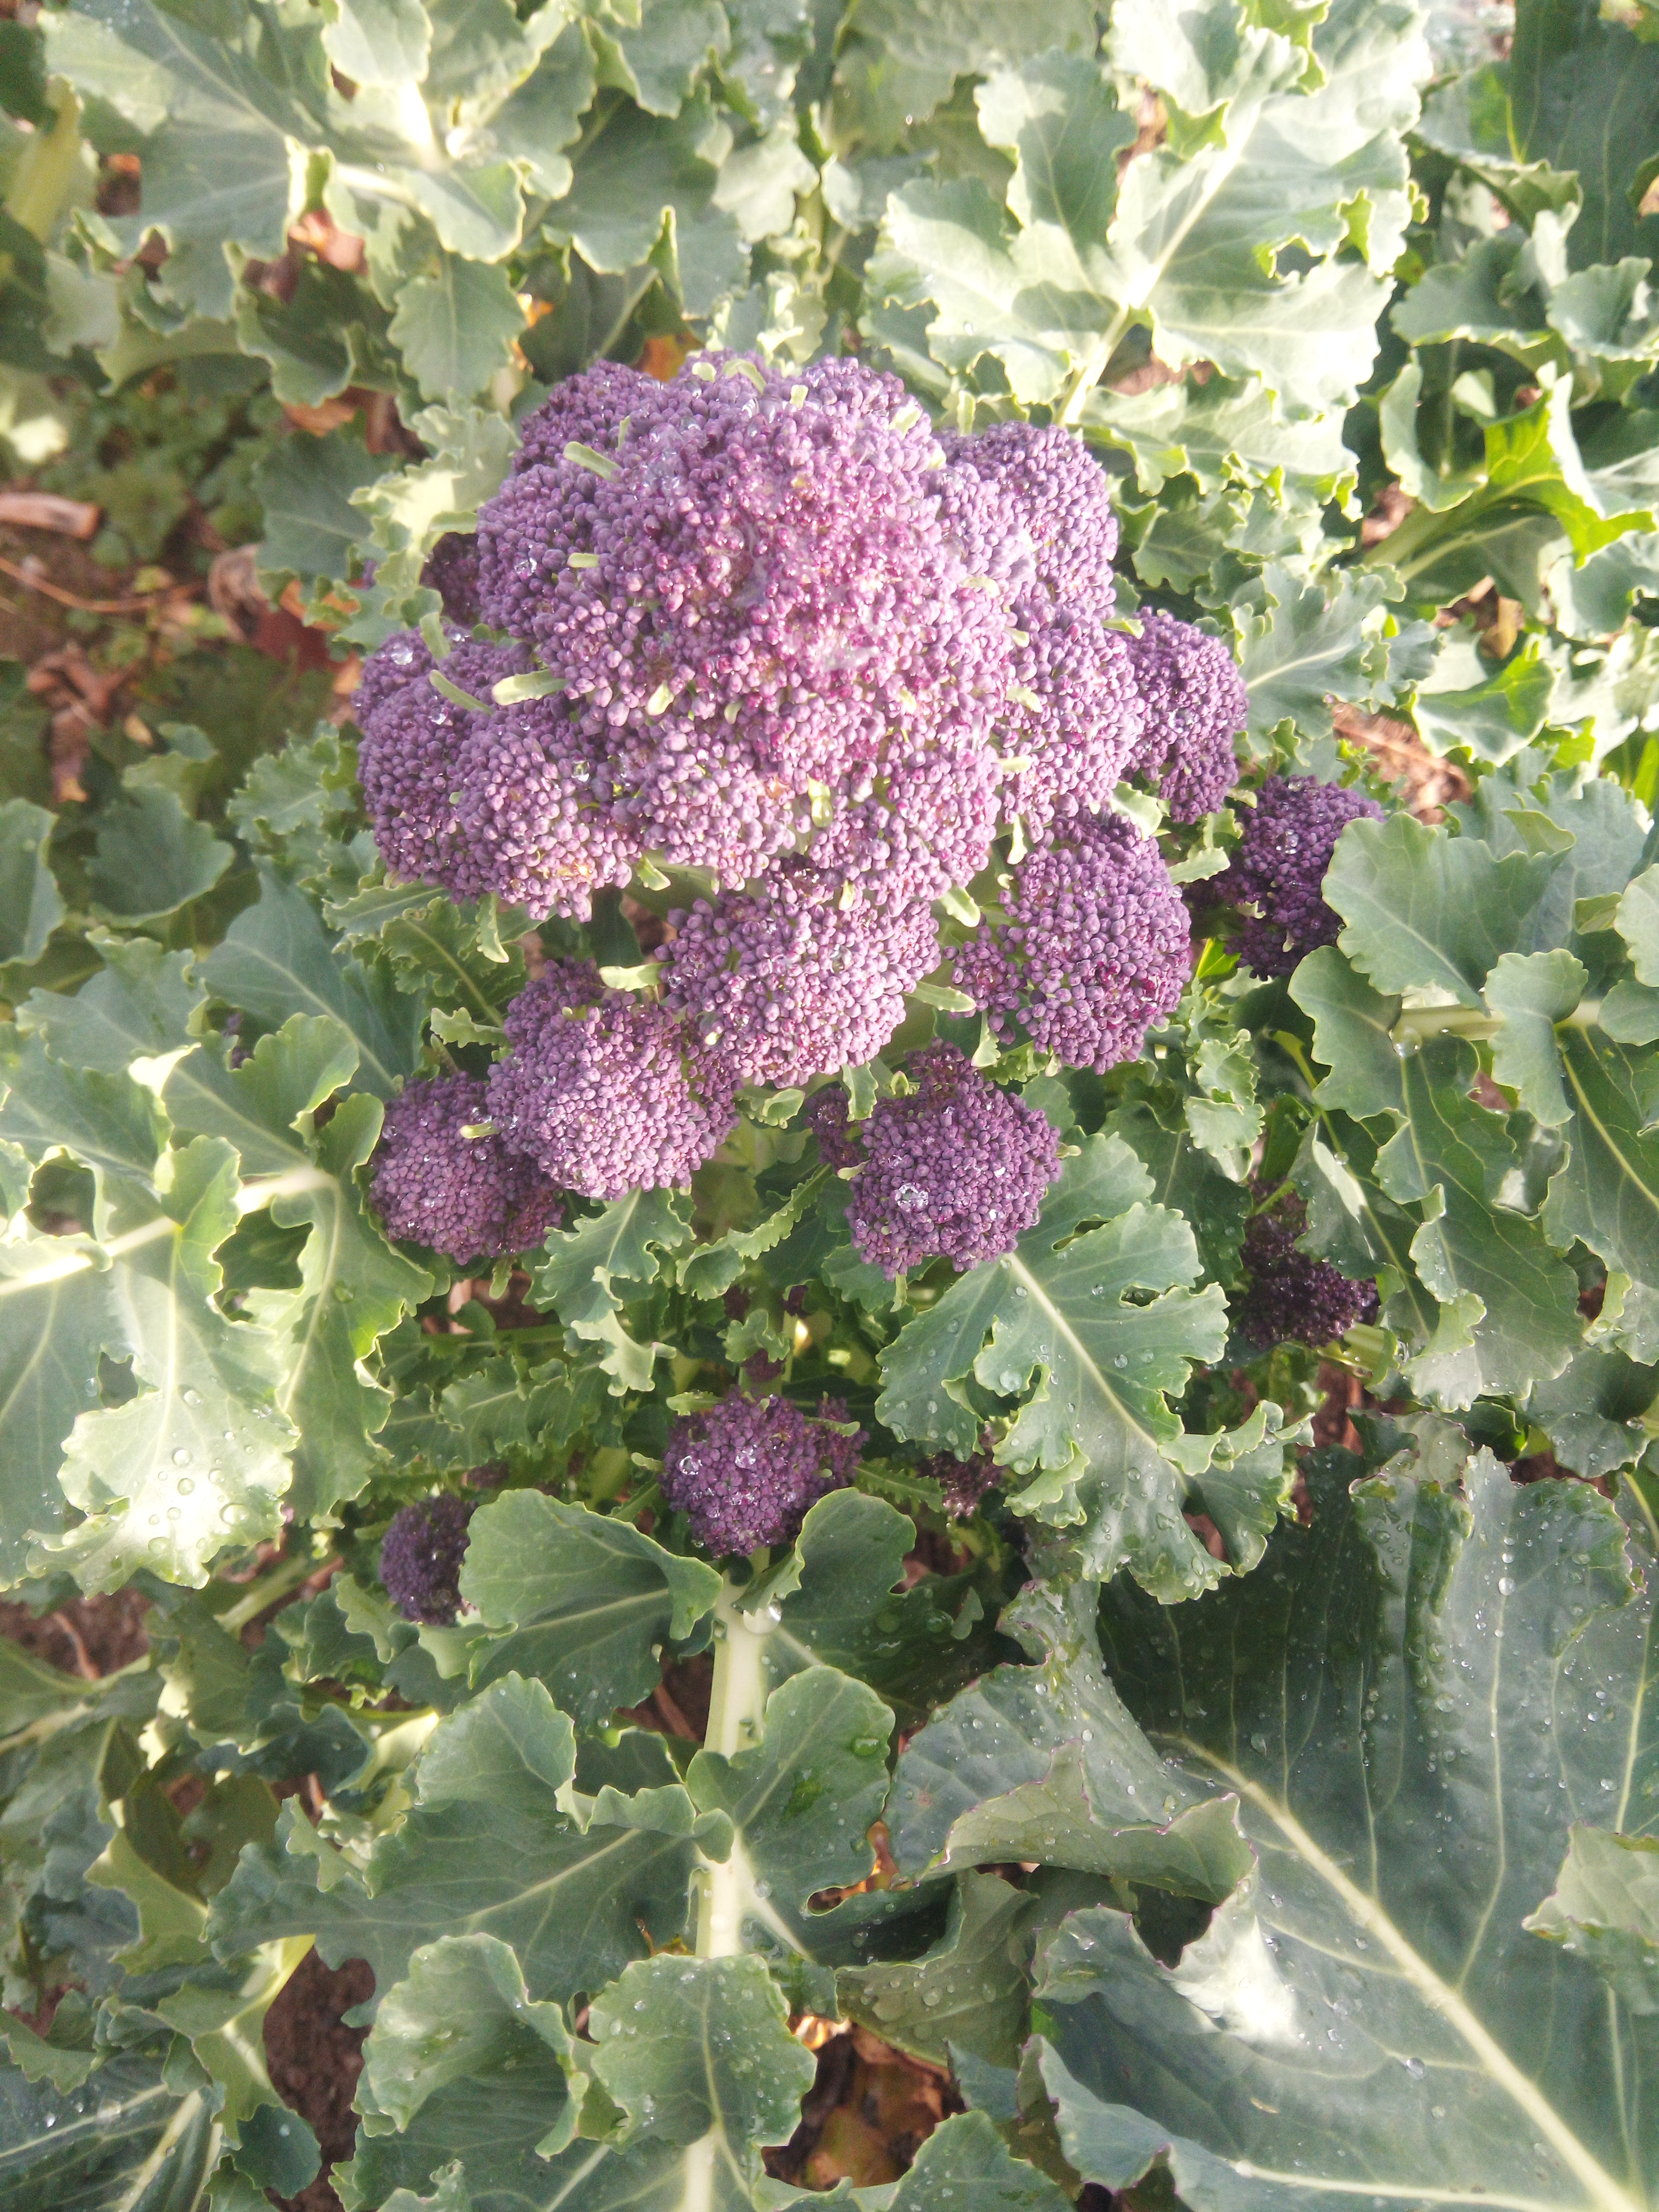 purple sprouting plant